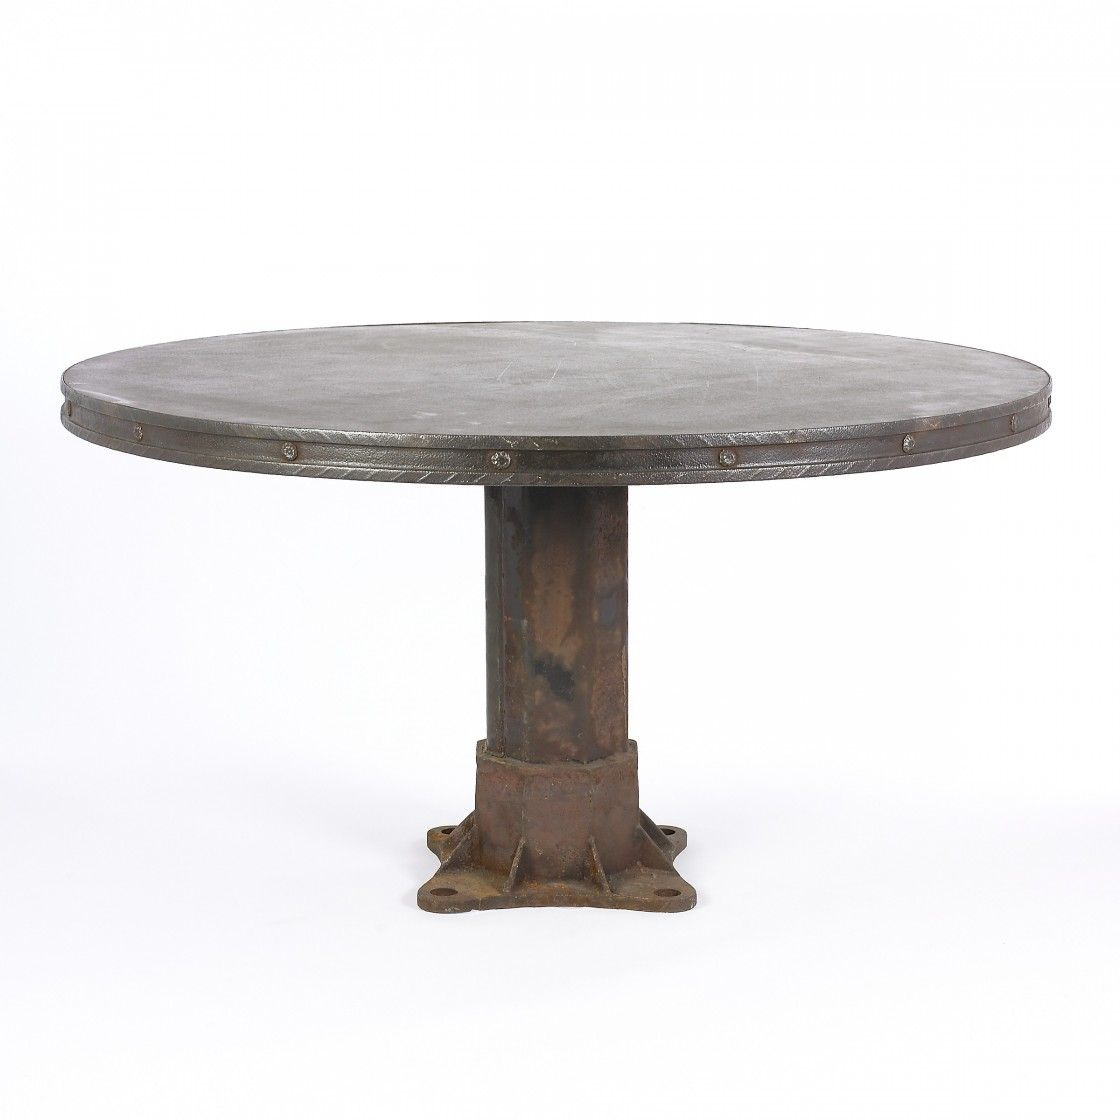 Cheap And Rustic Round Black Iron Riveted Dining Table Model With